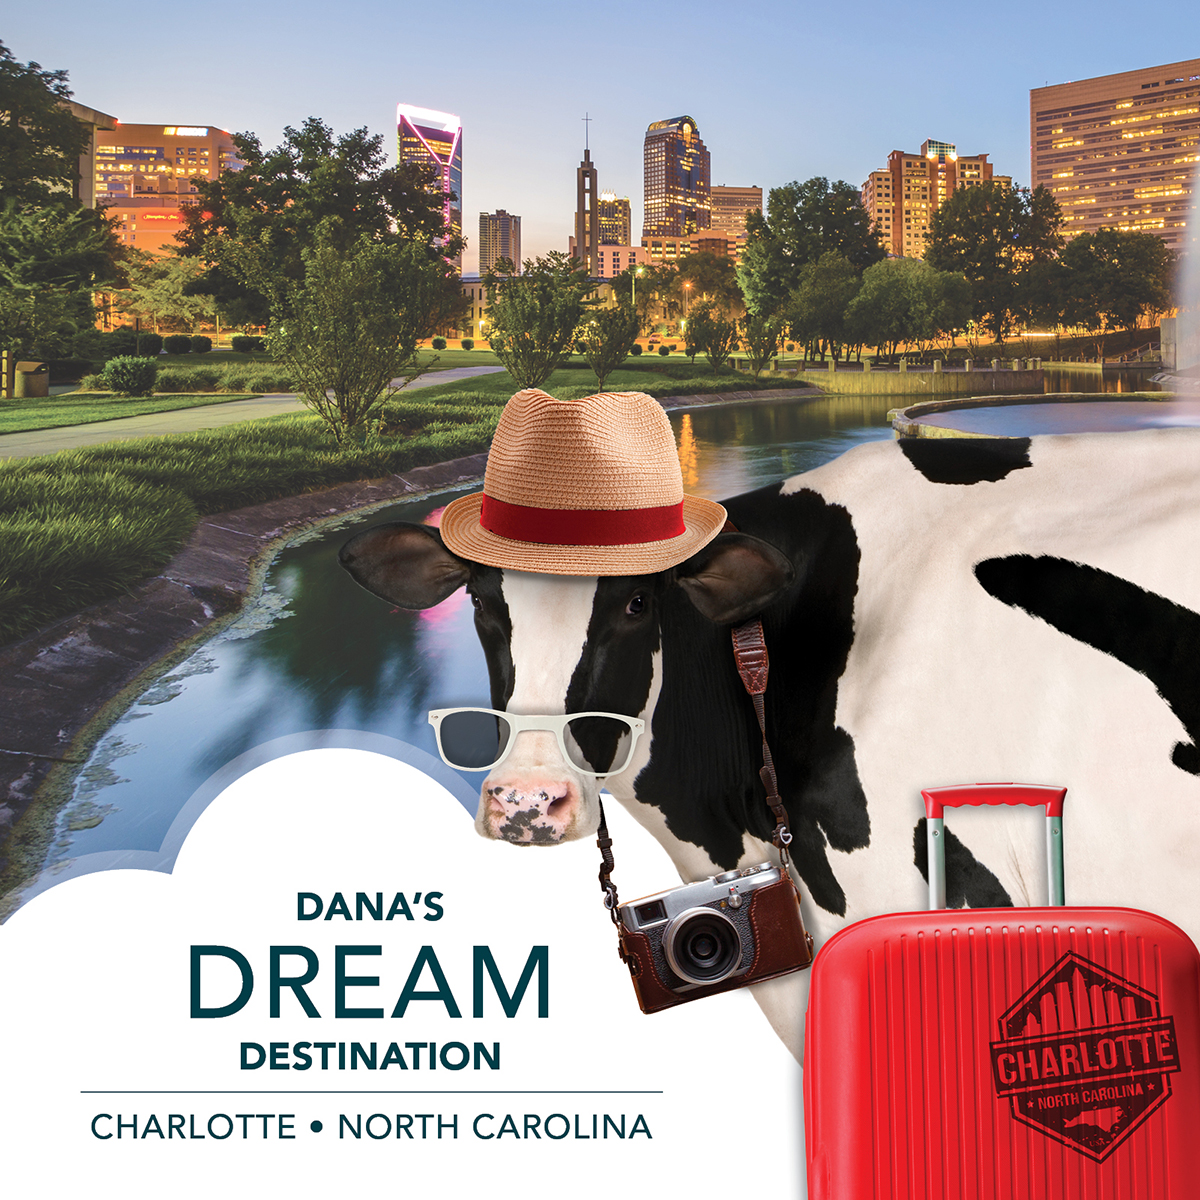 Dana can't wait to visit her 2021 dream destinations! She is ready to fly local from MSN Airport to @CLTAirport, where she can explore the famous EpiCentre, pan for gold, and so much more:   #MSNAirport #Charlotte #FlyLocal #DanasDreamDestinations